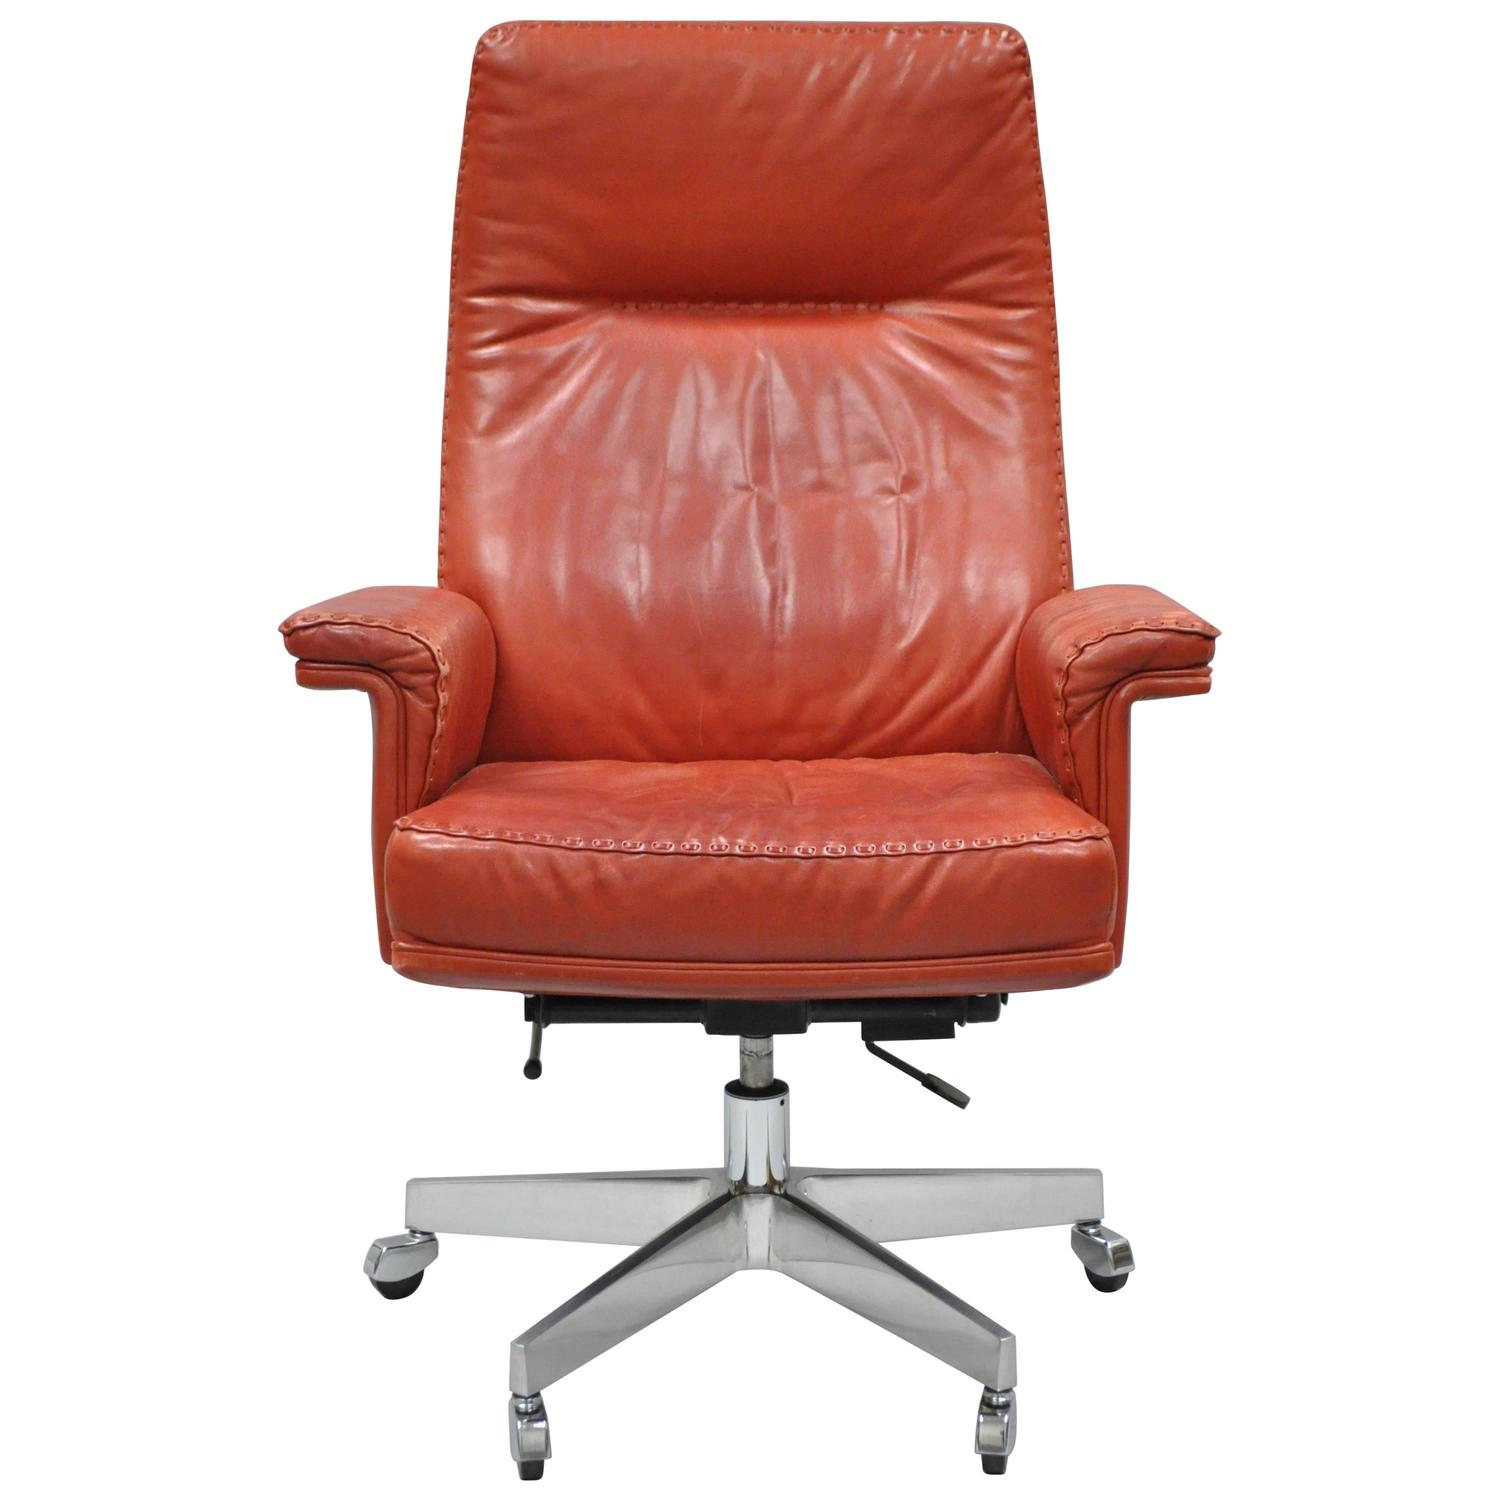 Tan leather office chair - Vintage De Sede Ds 35 Red Leather And Chrome Caster Executive Swivel Desk Chair For Sale At 1stdibs